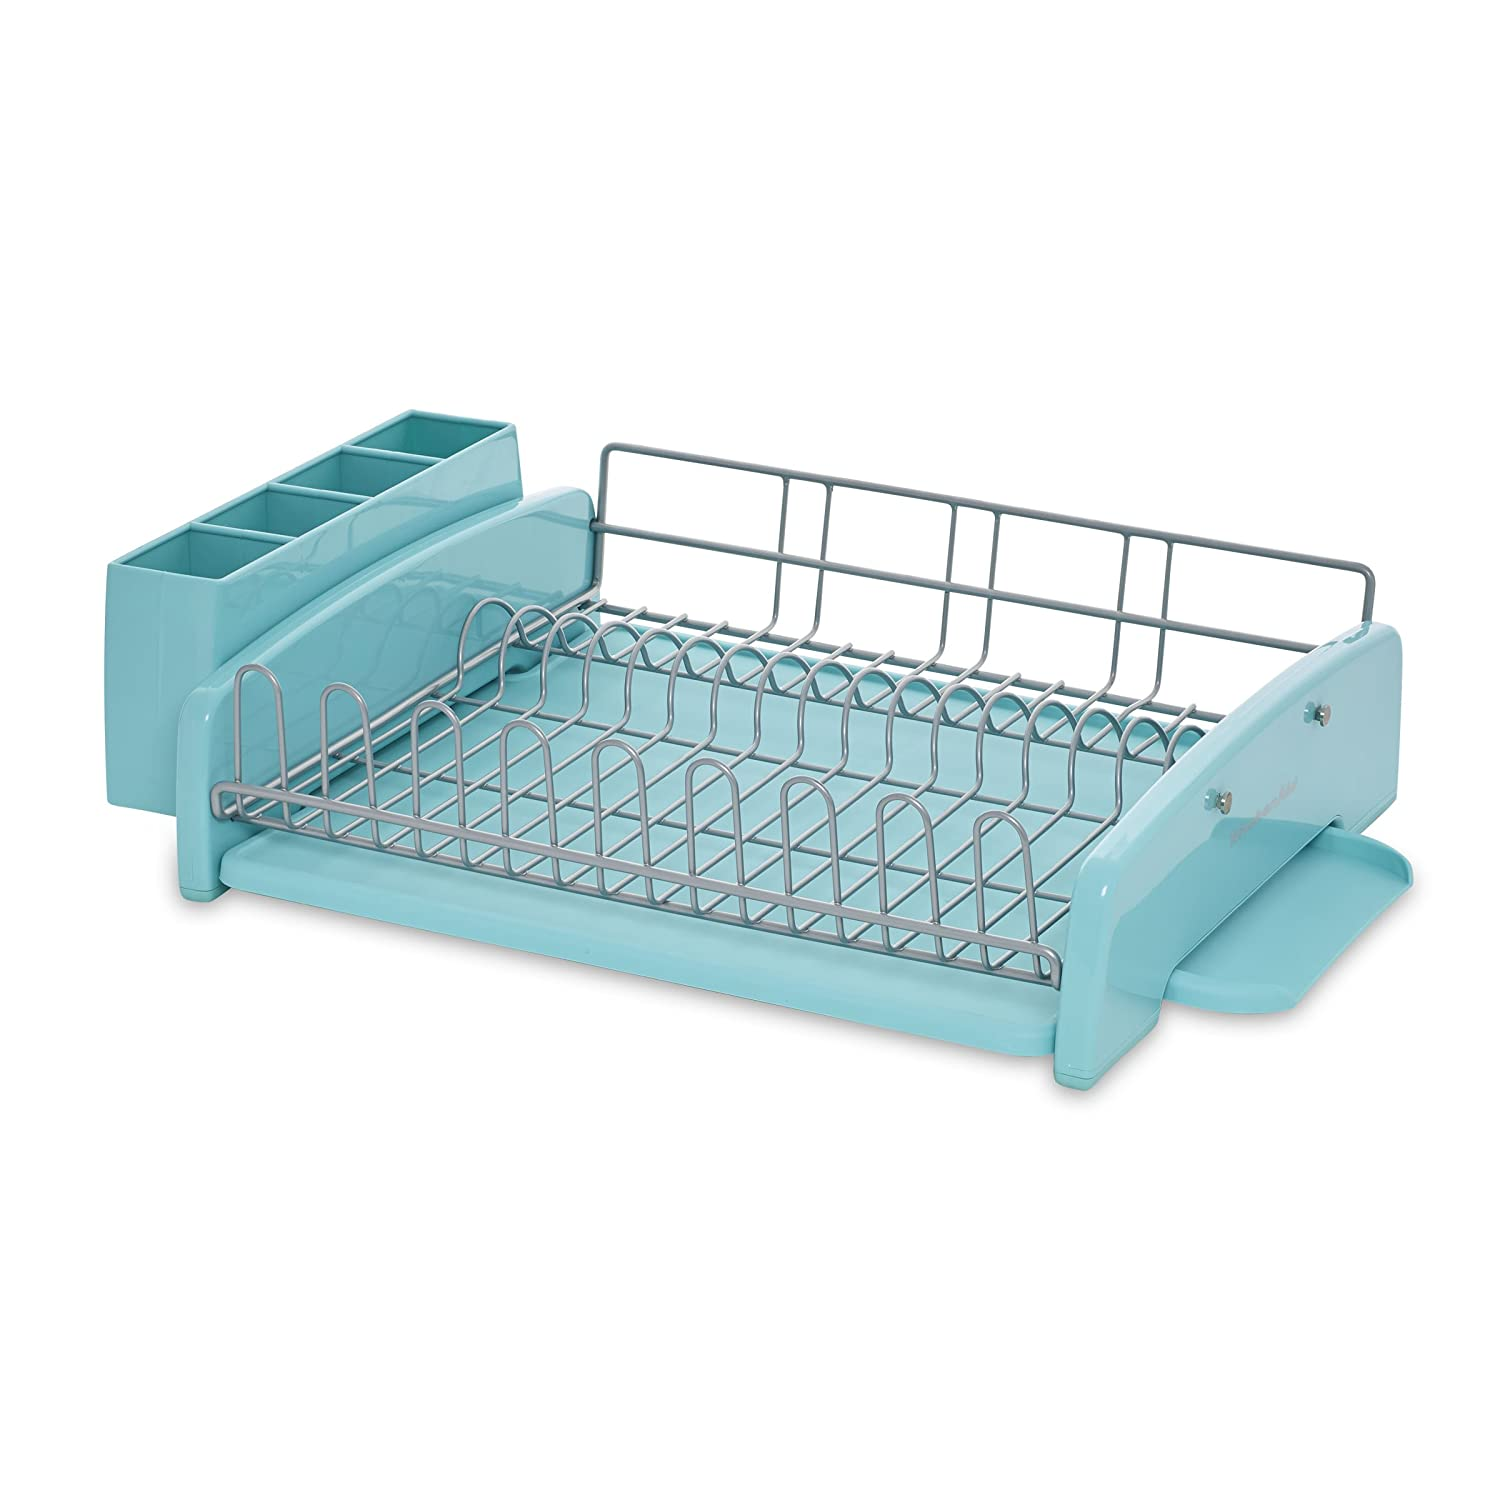 Amazon.com: KitchenAid 3-Piece Dish Rack, Aqua Sky: Kitchen & Dining